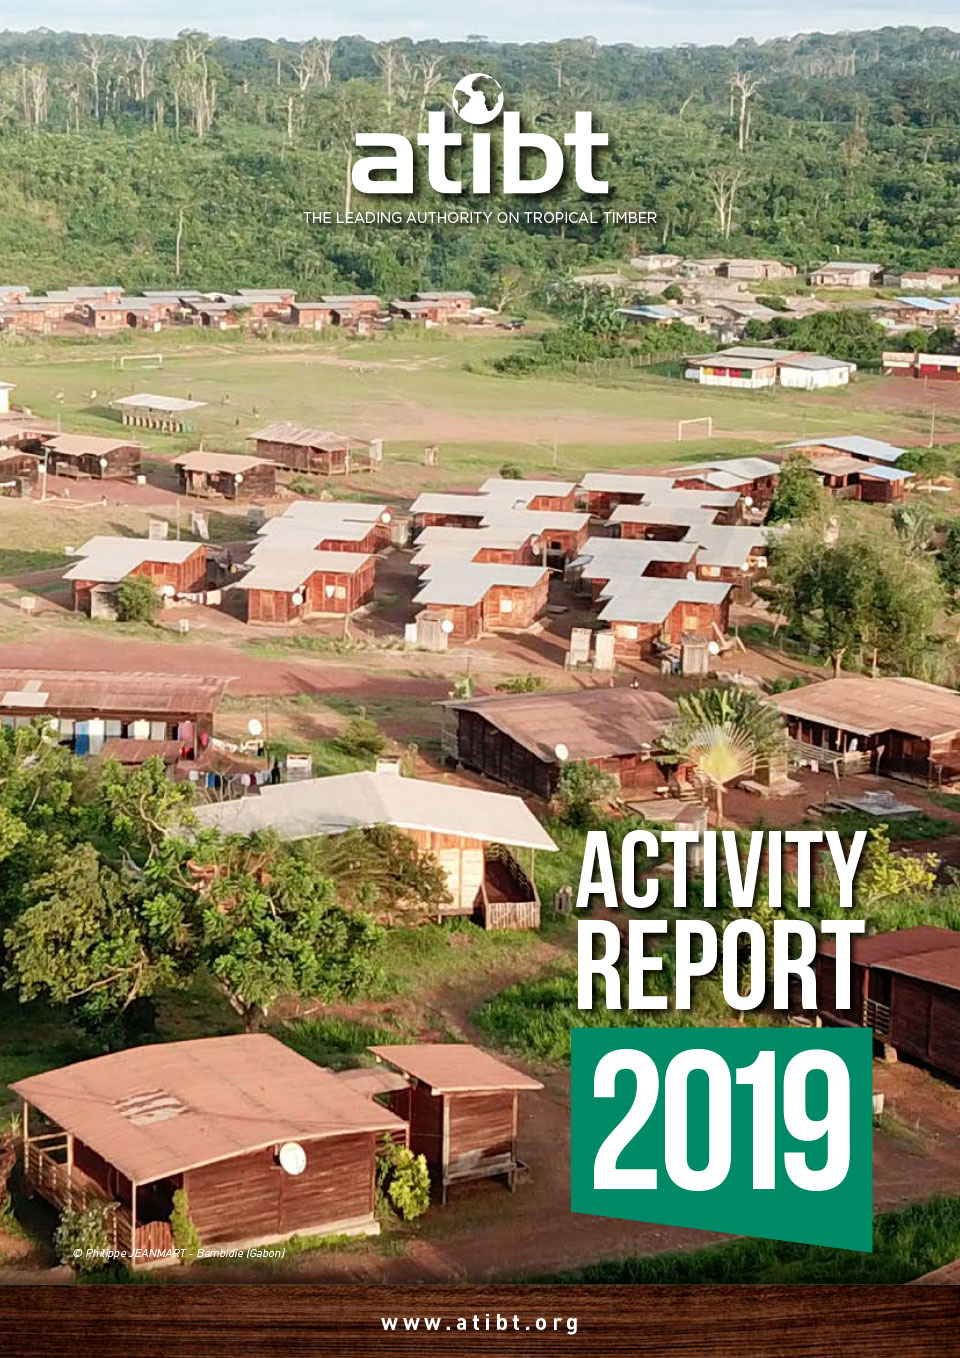 ATIBT Activity Report 2019